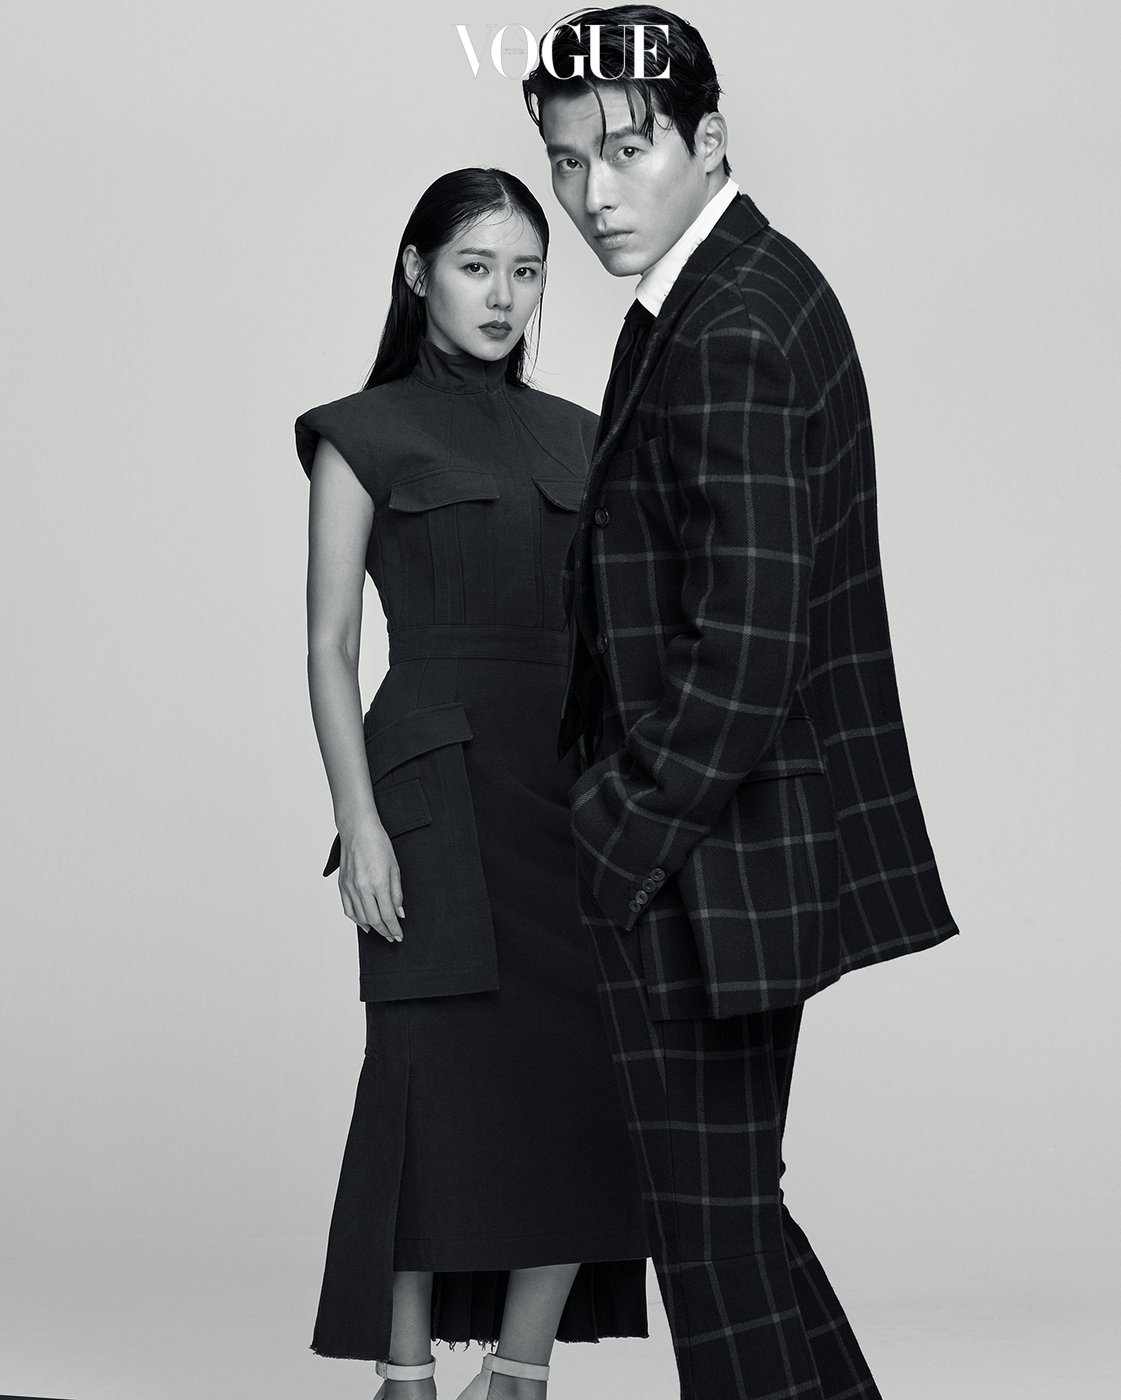 hyun bin and son ye jin shooting vogue for promoting new movie